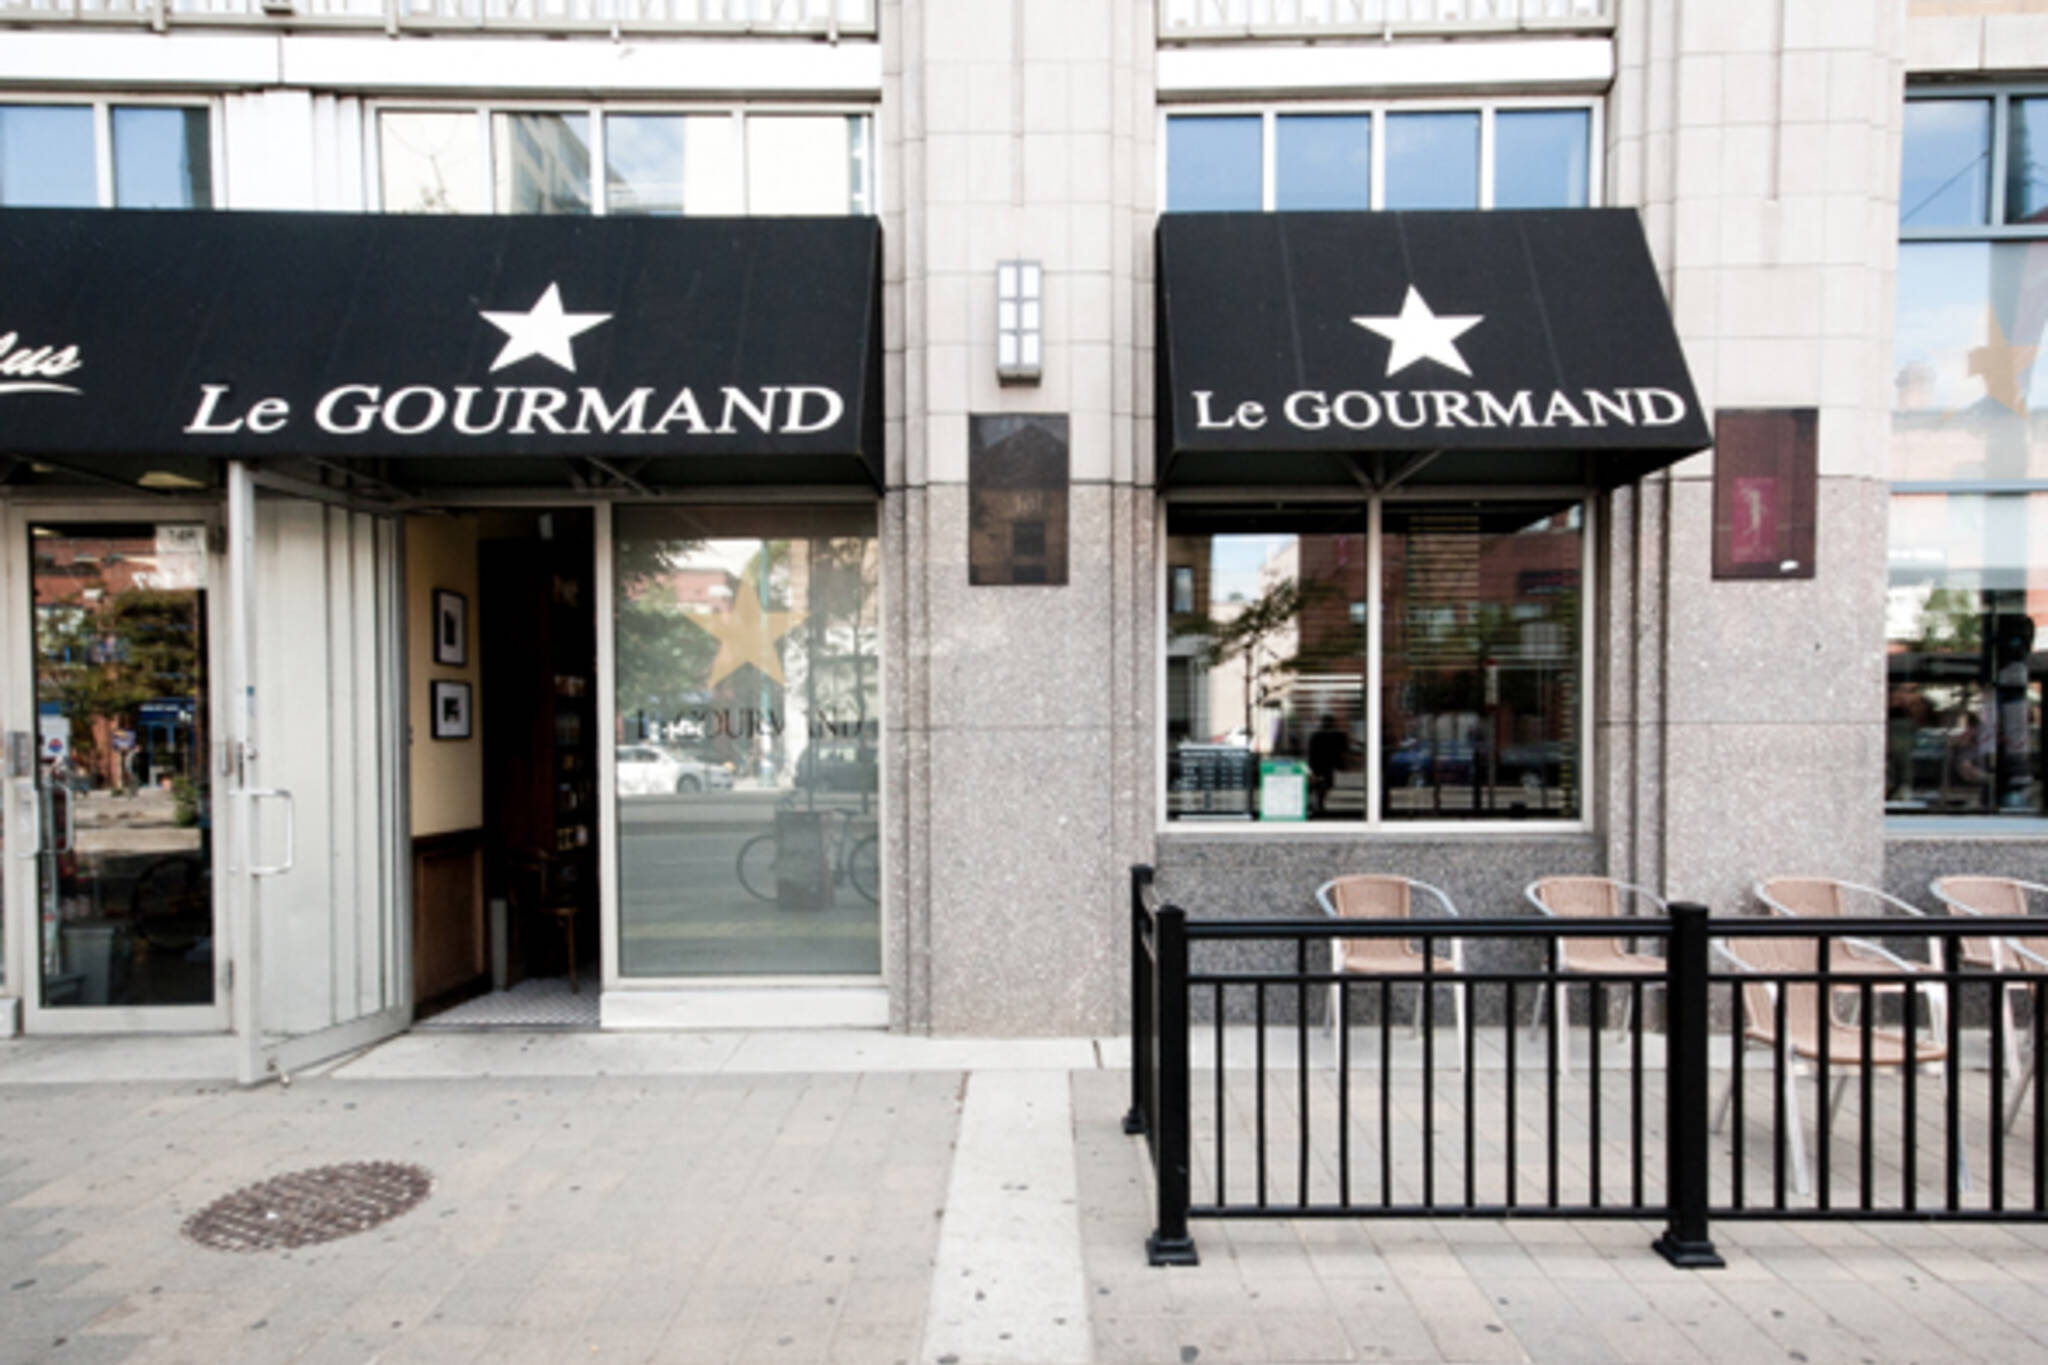 Le Gourmand reopens